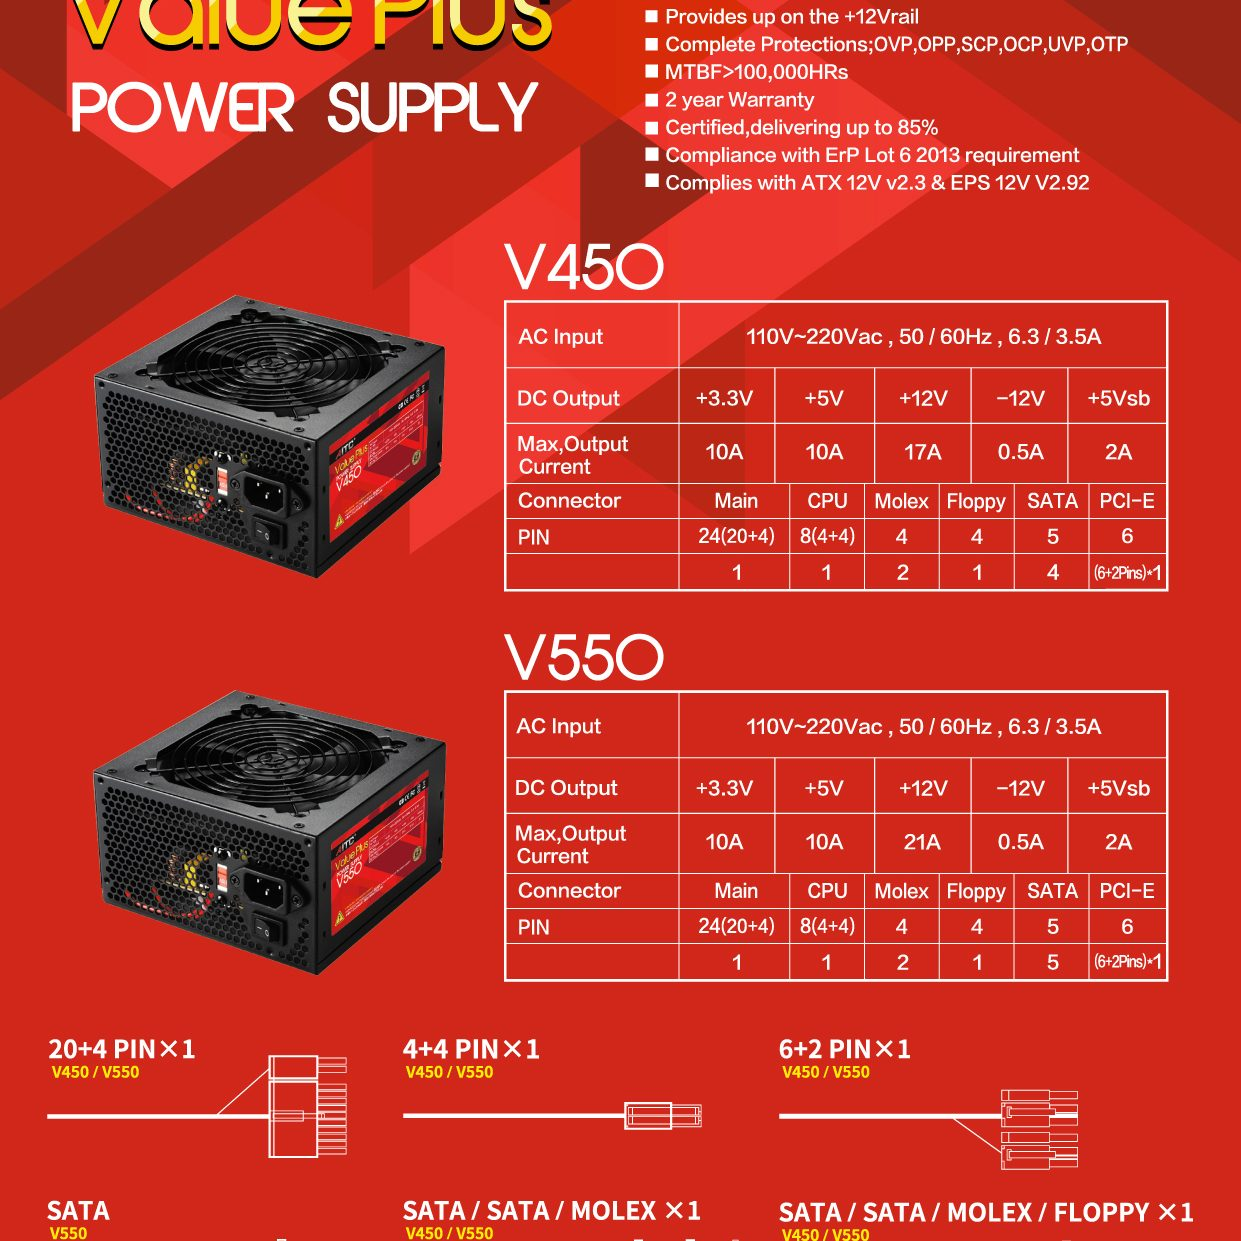 POWER SUPPLY EDM_Value Plus